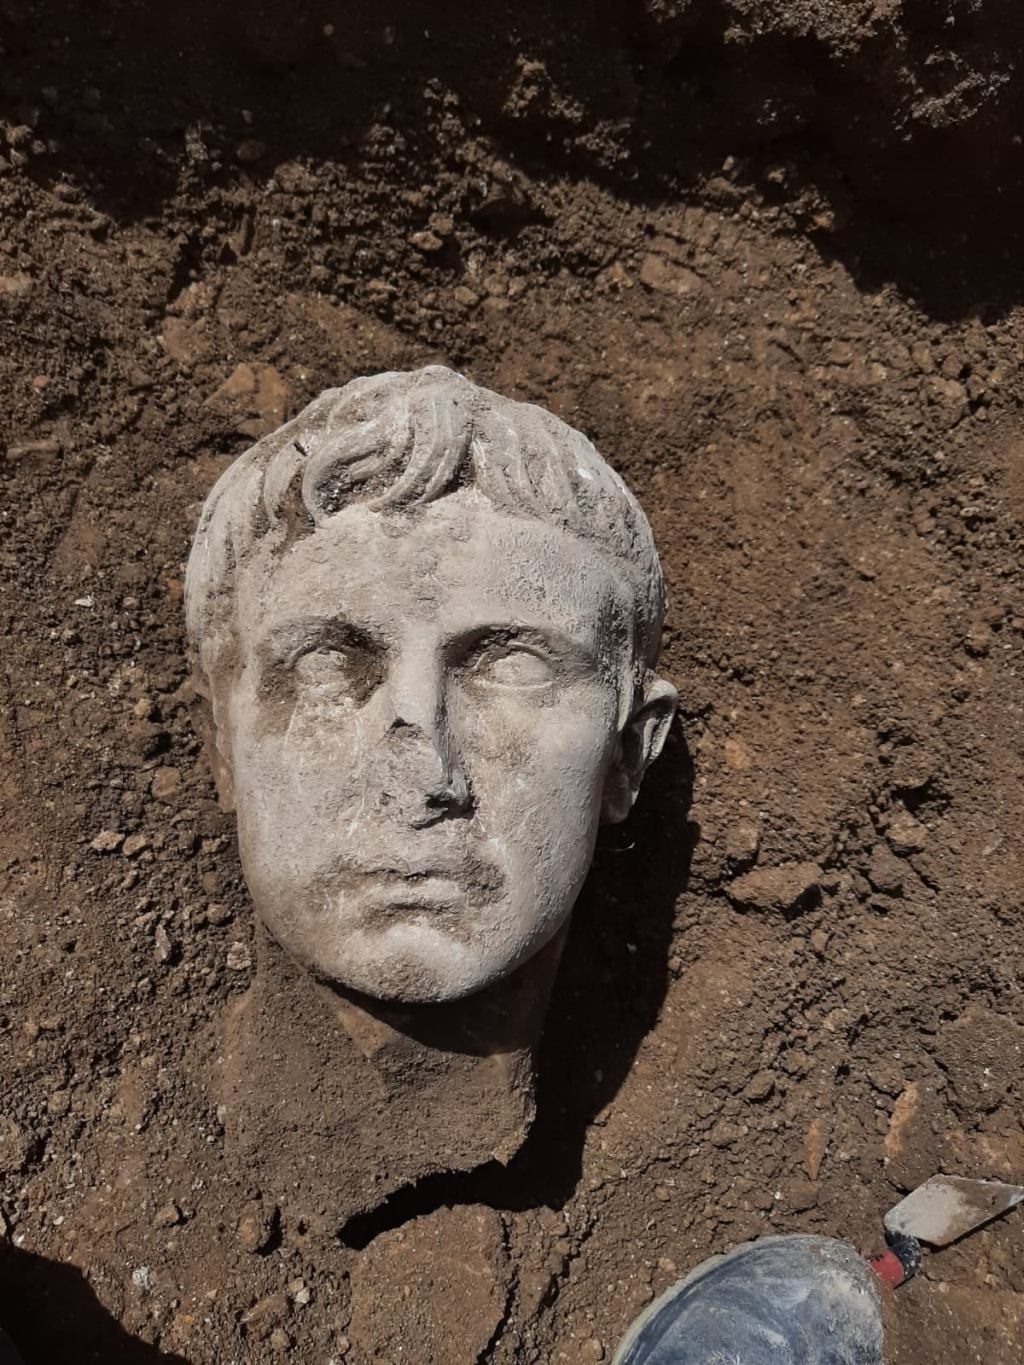 Archaeologists Find Marble Head of Roman Emperor Augustus in Italian Town